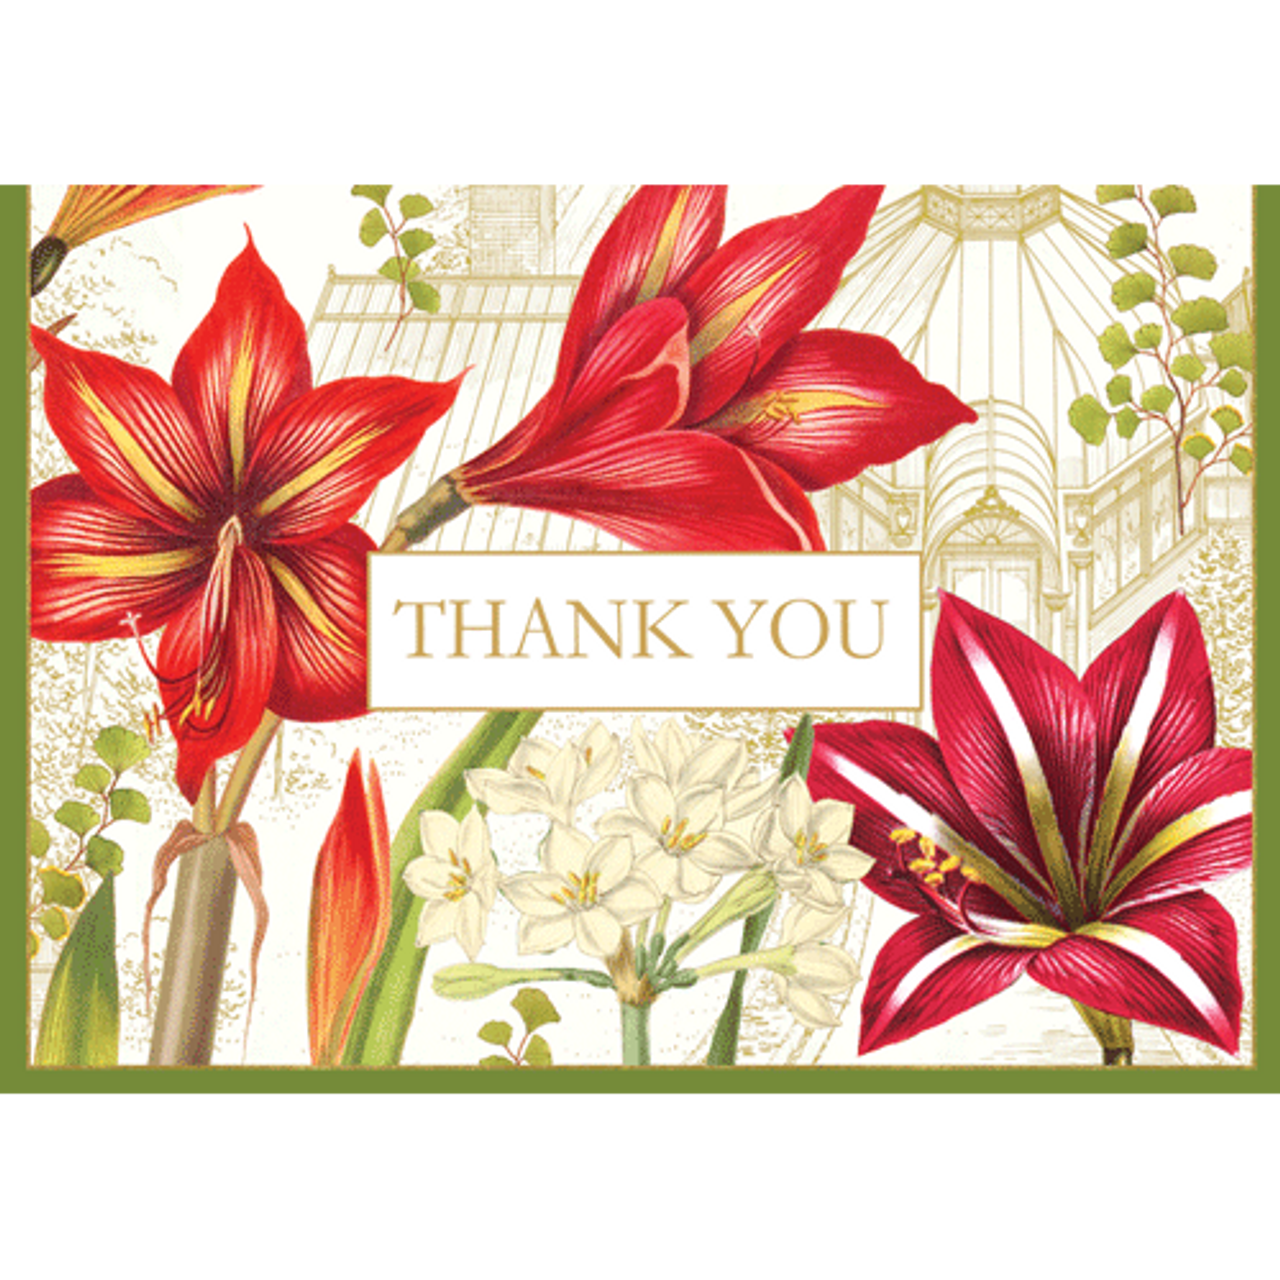 Christmas Thank You Cards.Christmas Blooms Thank You Cards With Box